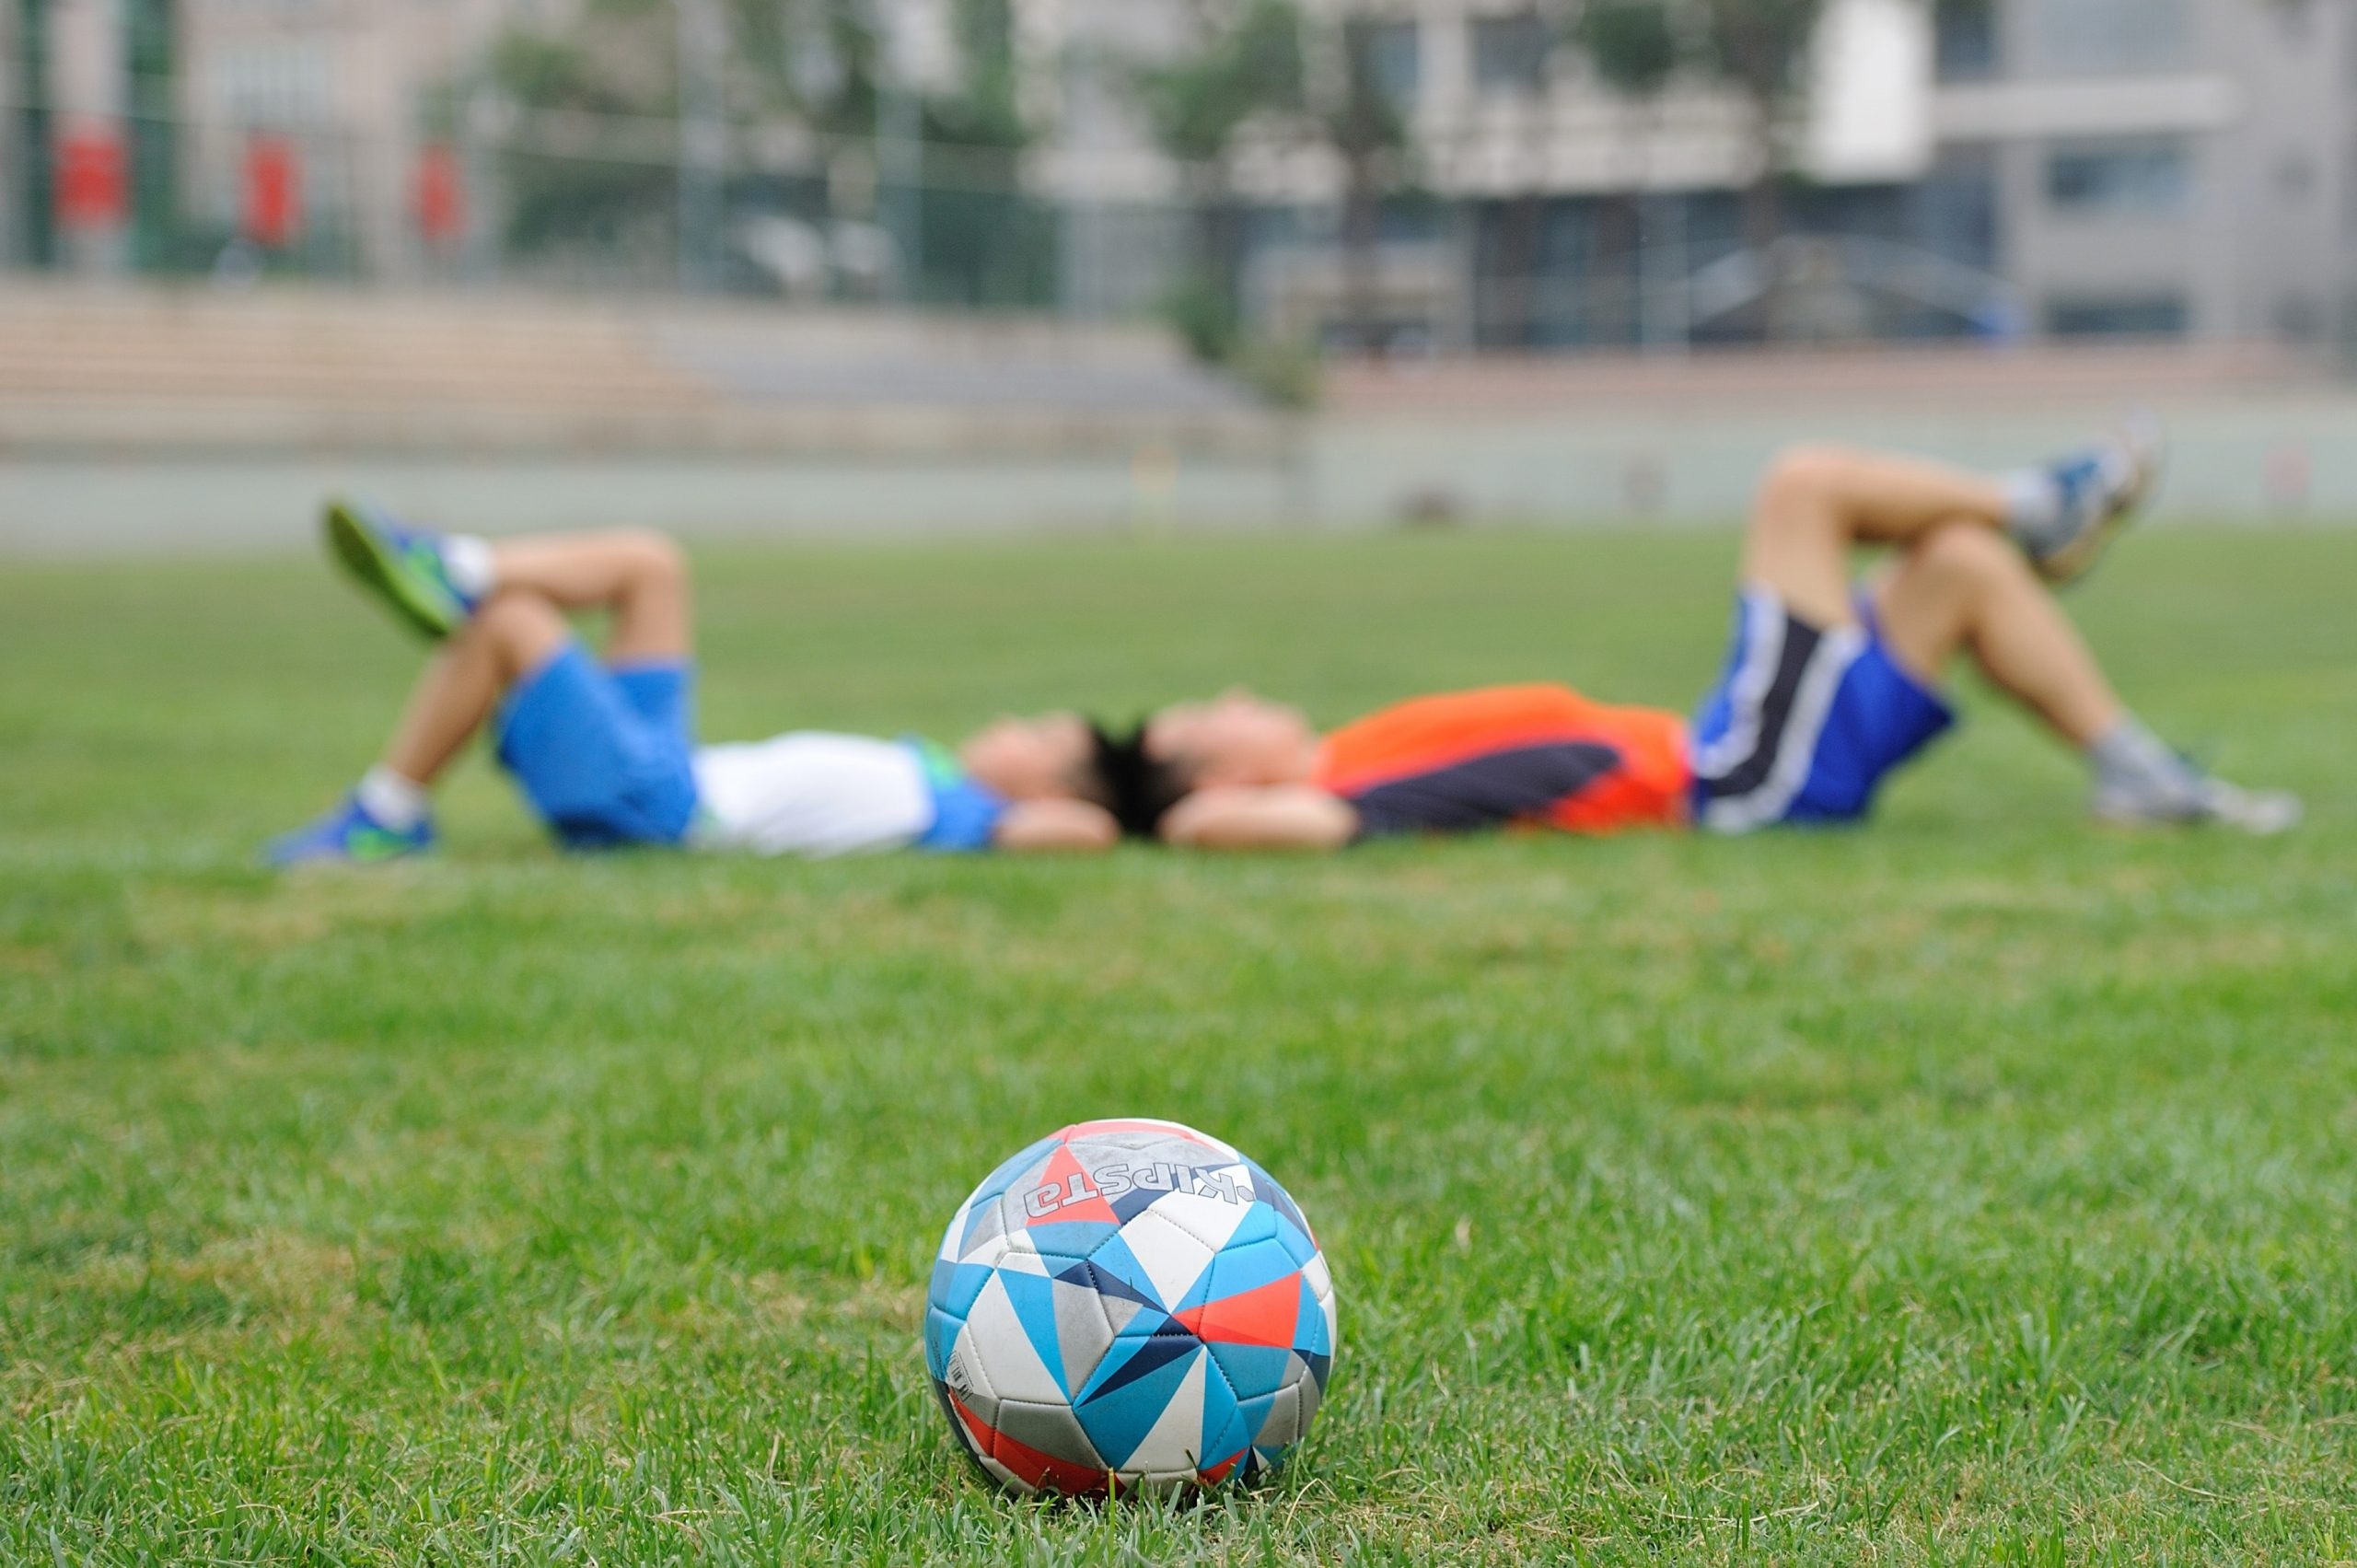 Students resting on turf after soccer game